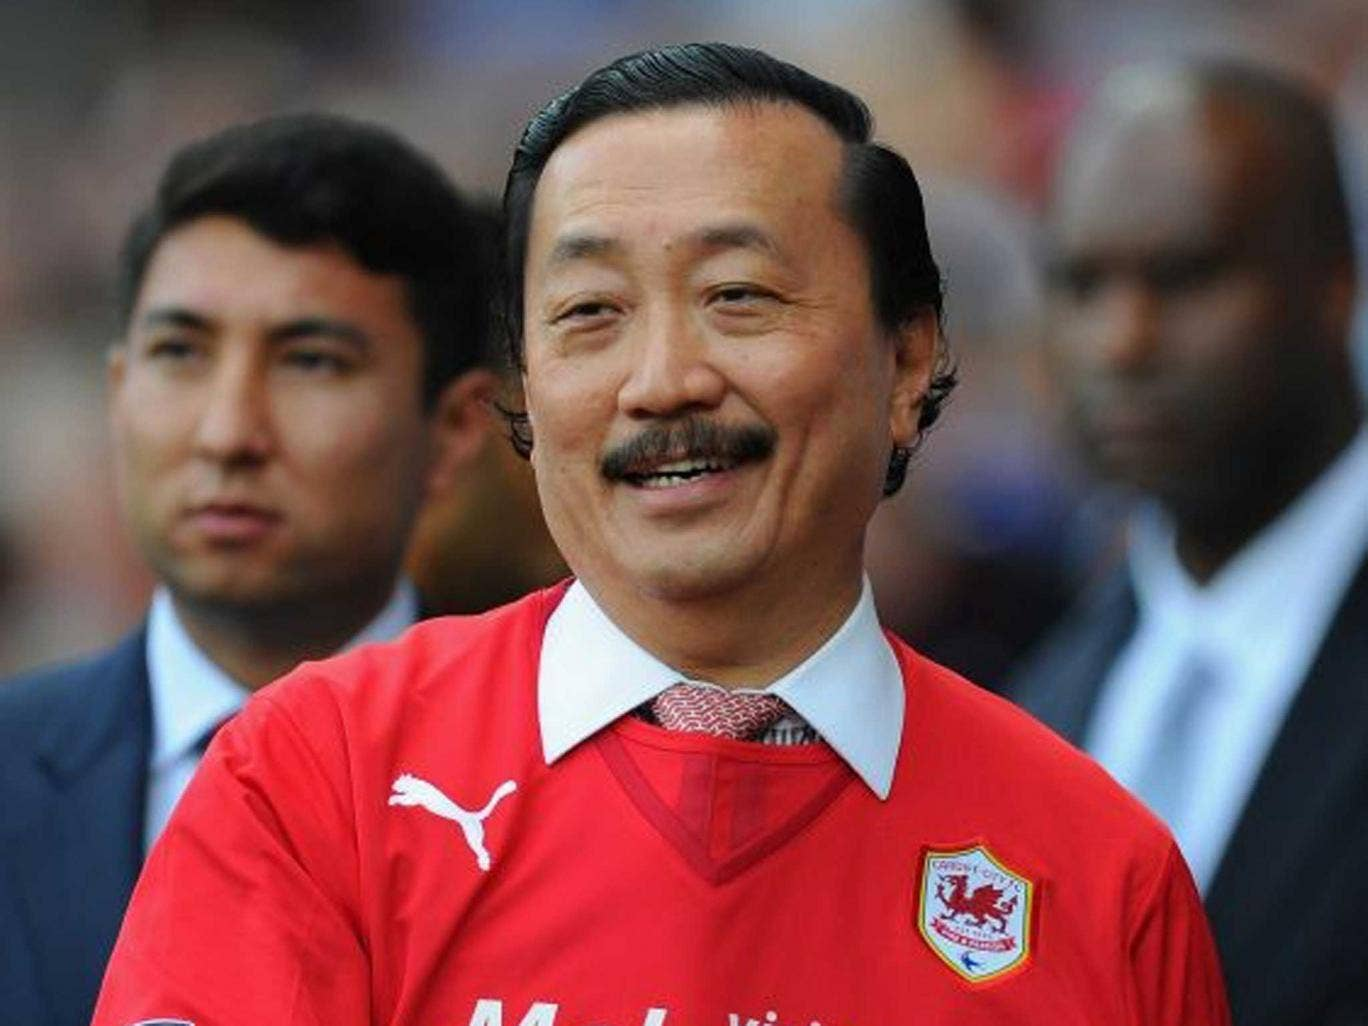 Villians No shortage of controversial owners and chairmen; Cardiff's Vincent Tan may yet end up as one of the more villainous. On the pitch, being loyal Welsh internationals won't spare the likes of Craig Bellamy, Ashley Williams and others from dog's abu